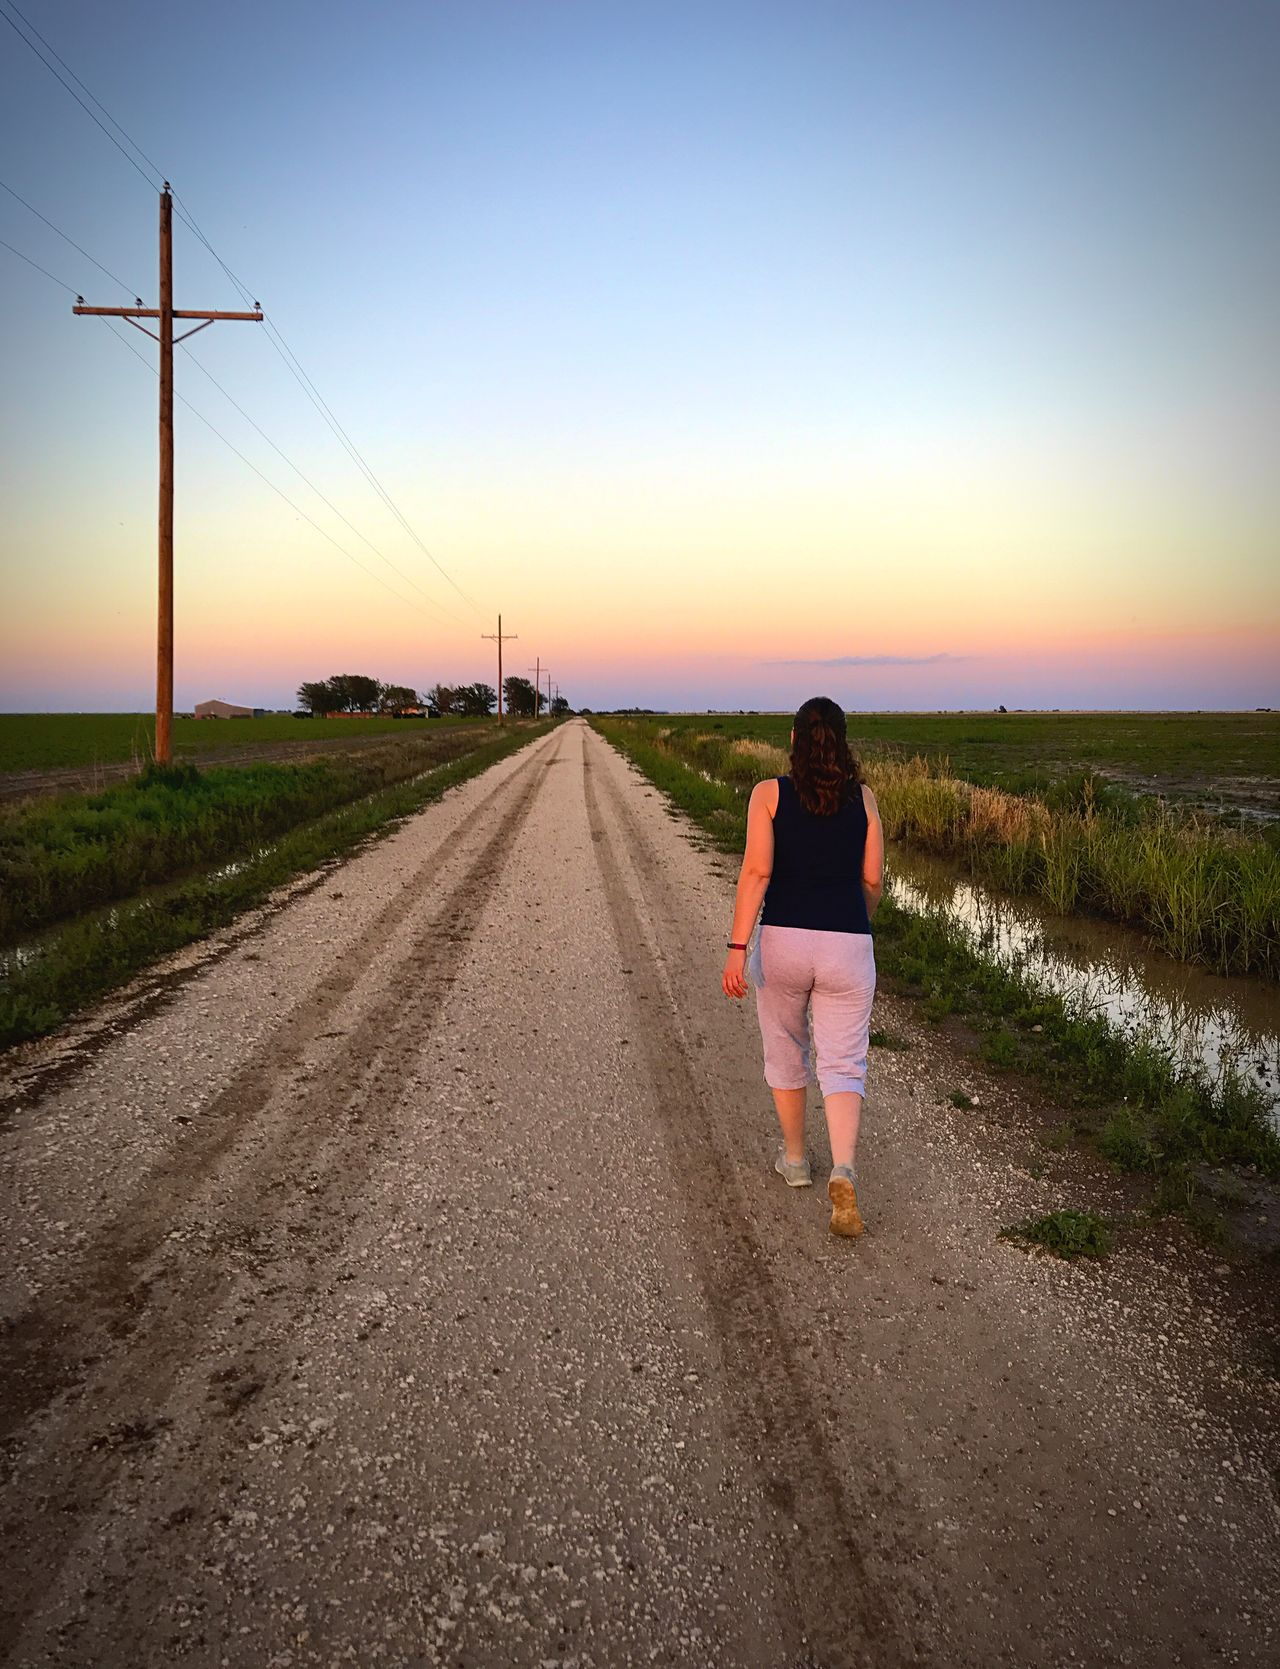 """""""The Long Way Home"""" Down a country road, beside the cottonfields, into a West Texas sunset. One Person The Way Forward Sunset Walking Real People Lifestyles Outdoors Road Scenics Adult People Sky West Texas Sunset Cottonfields West Texas Skies West Texas Rural Scene Rural Road Countryside Countryroads"""